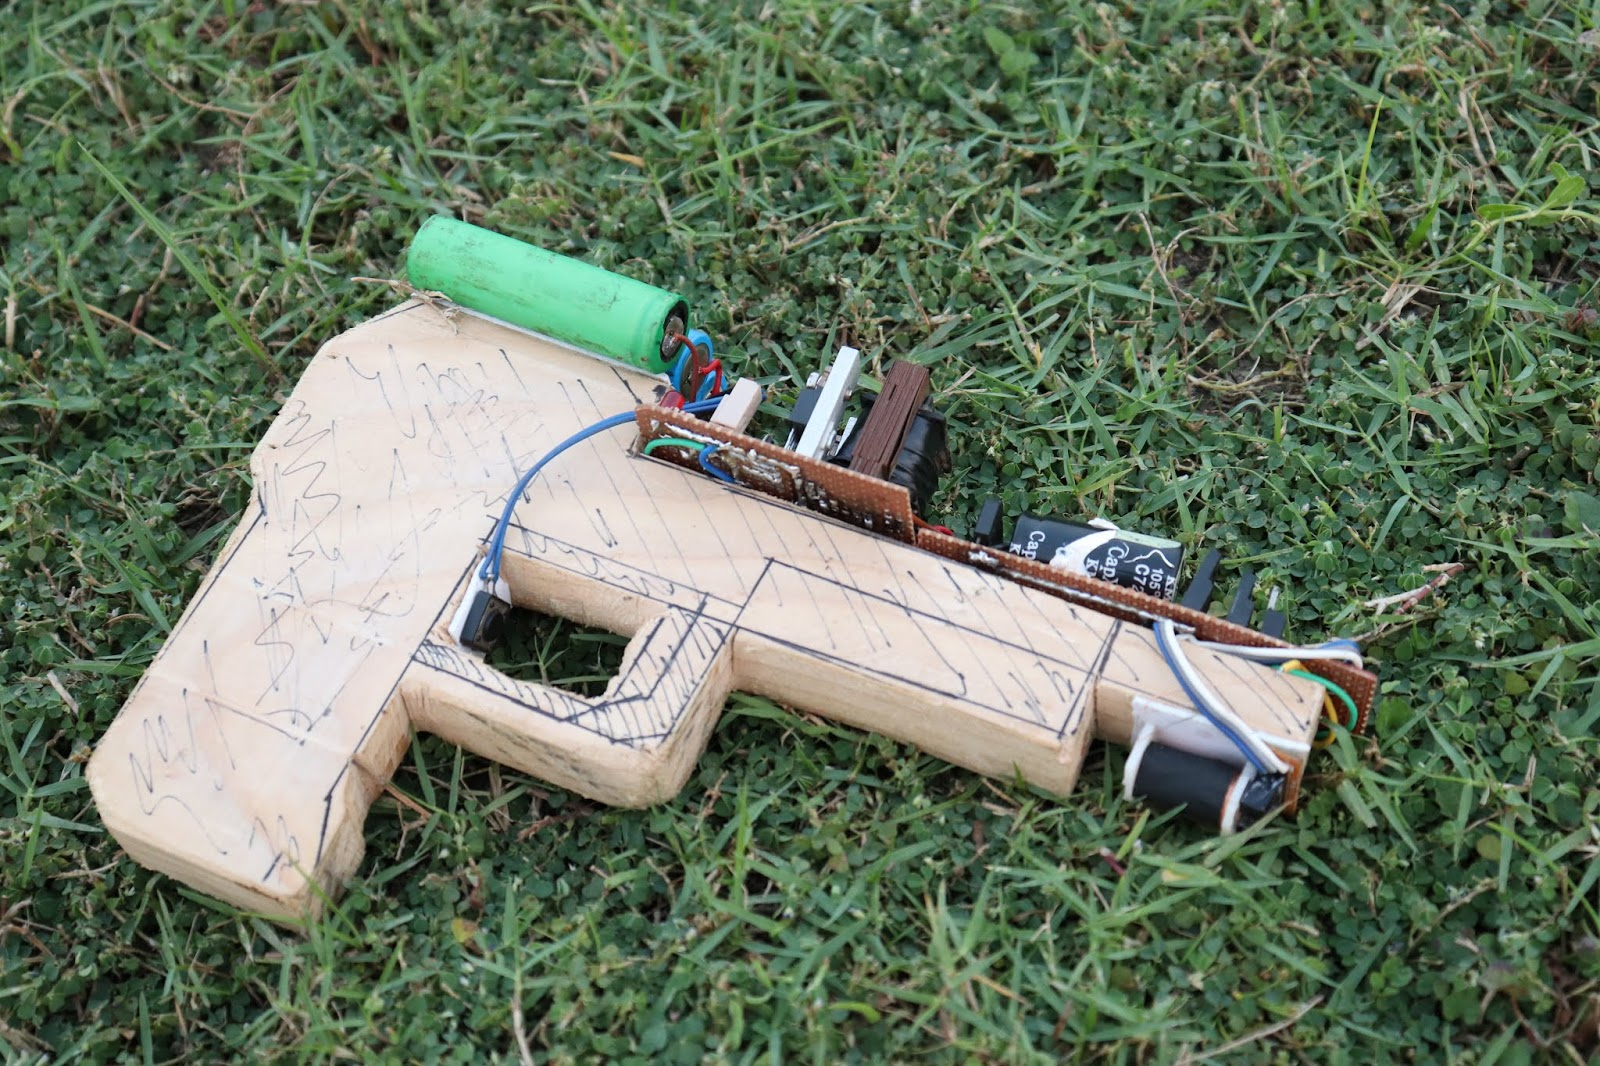 How to make a powerful coil gun - Et Discover